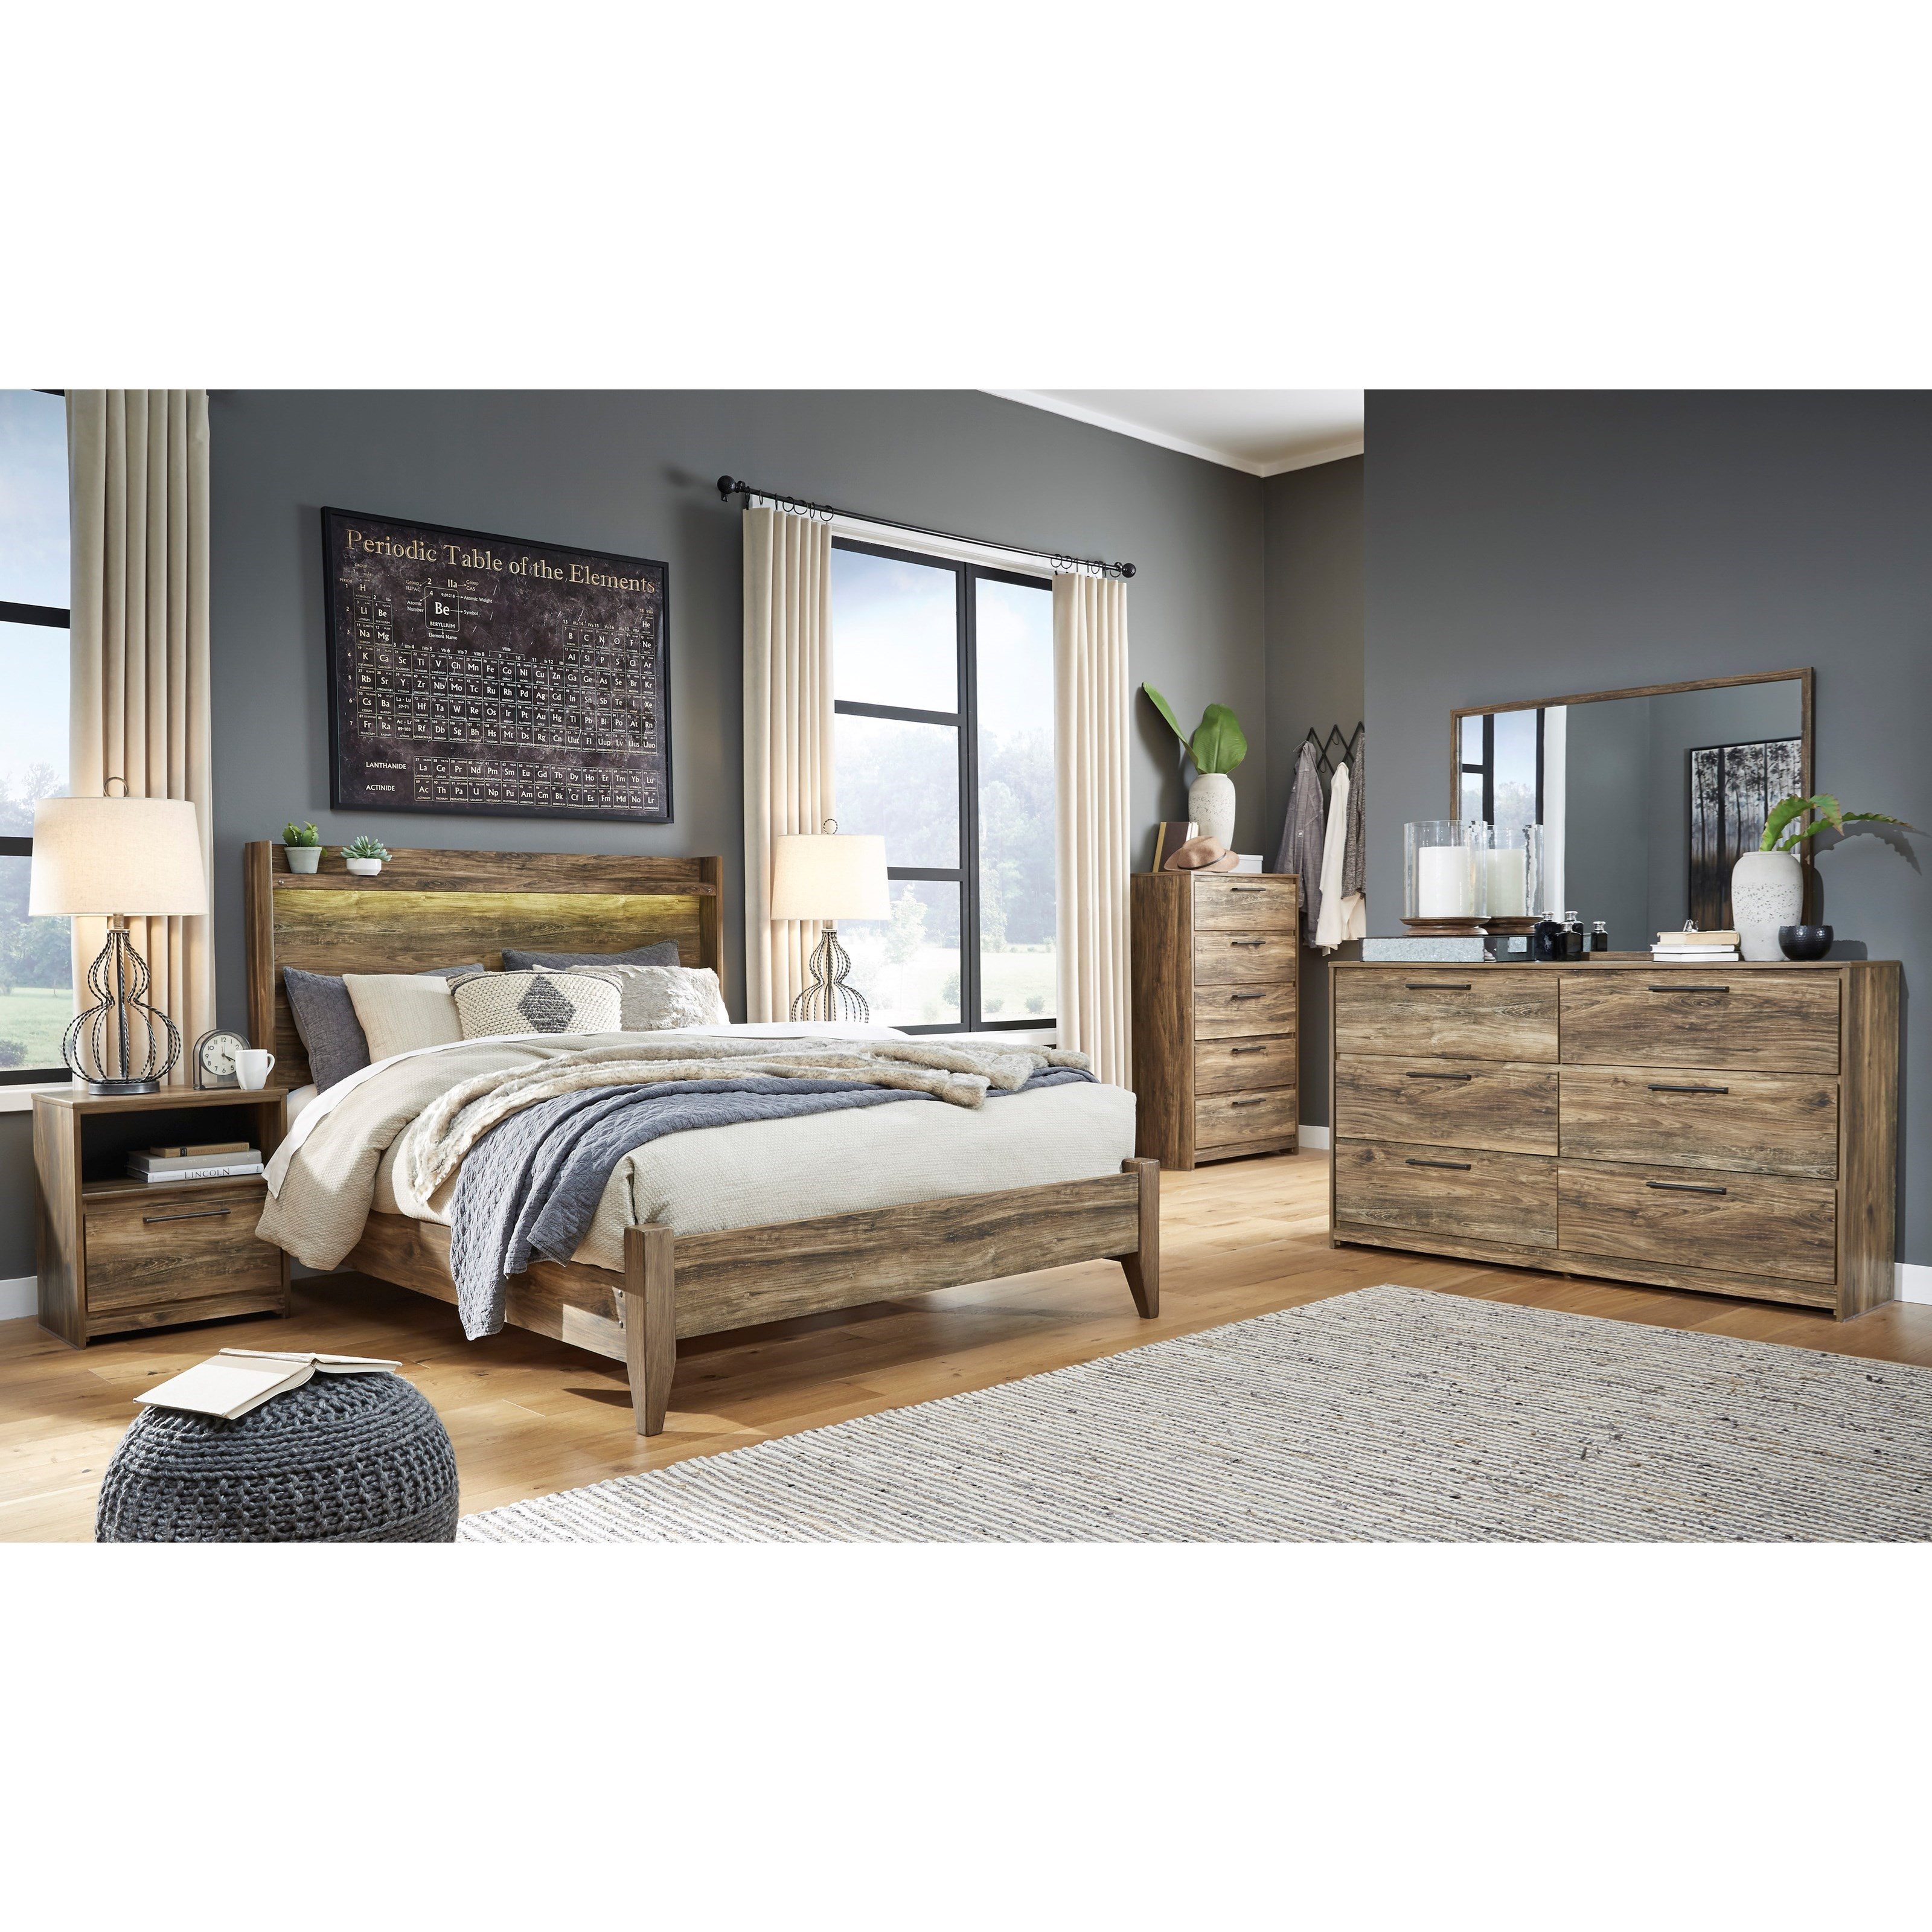 Rusthaven Queen Bedroom Group by Signature Design by Ashley at Furniture Fair - North Carolina